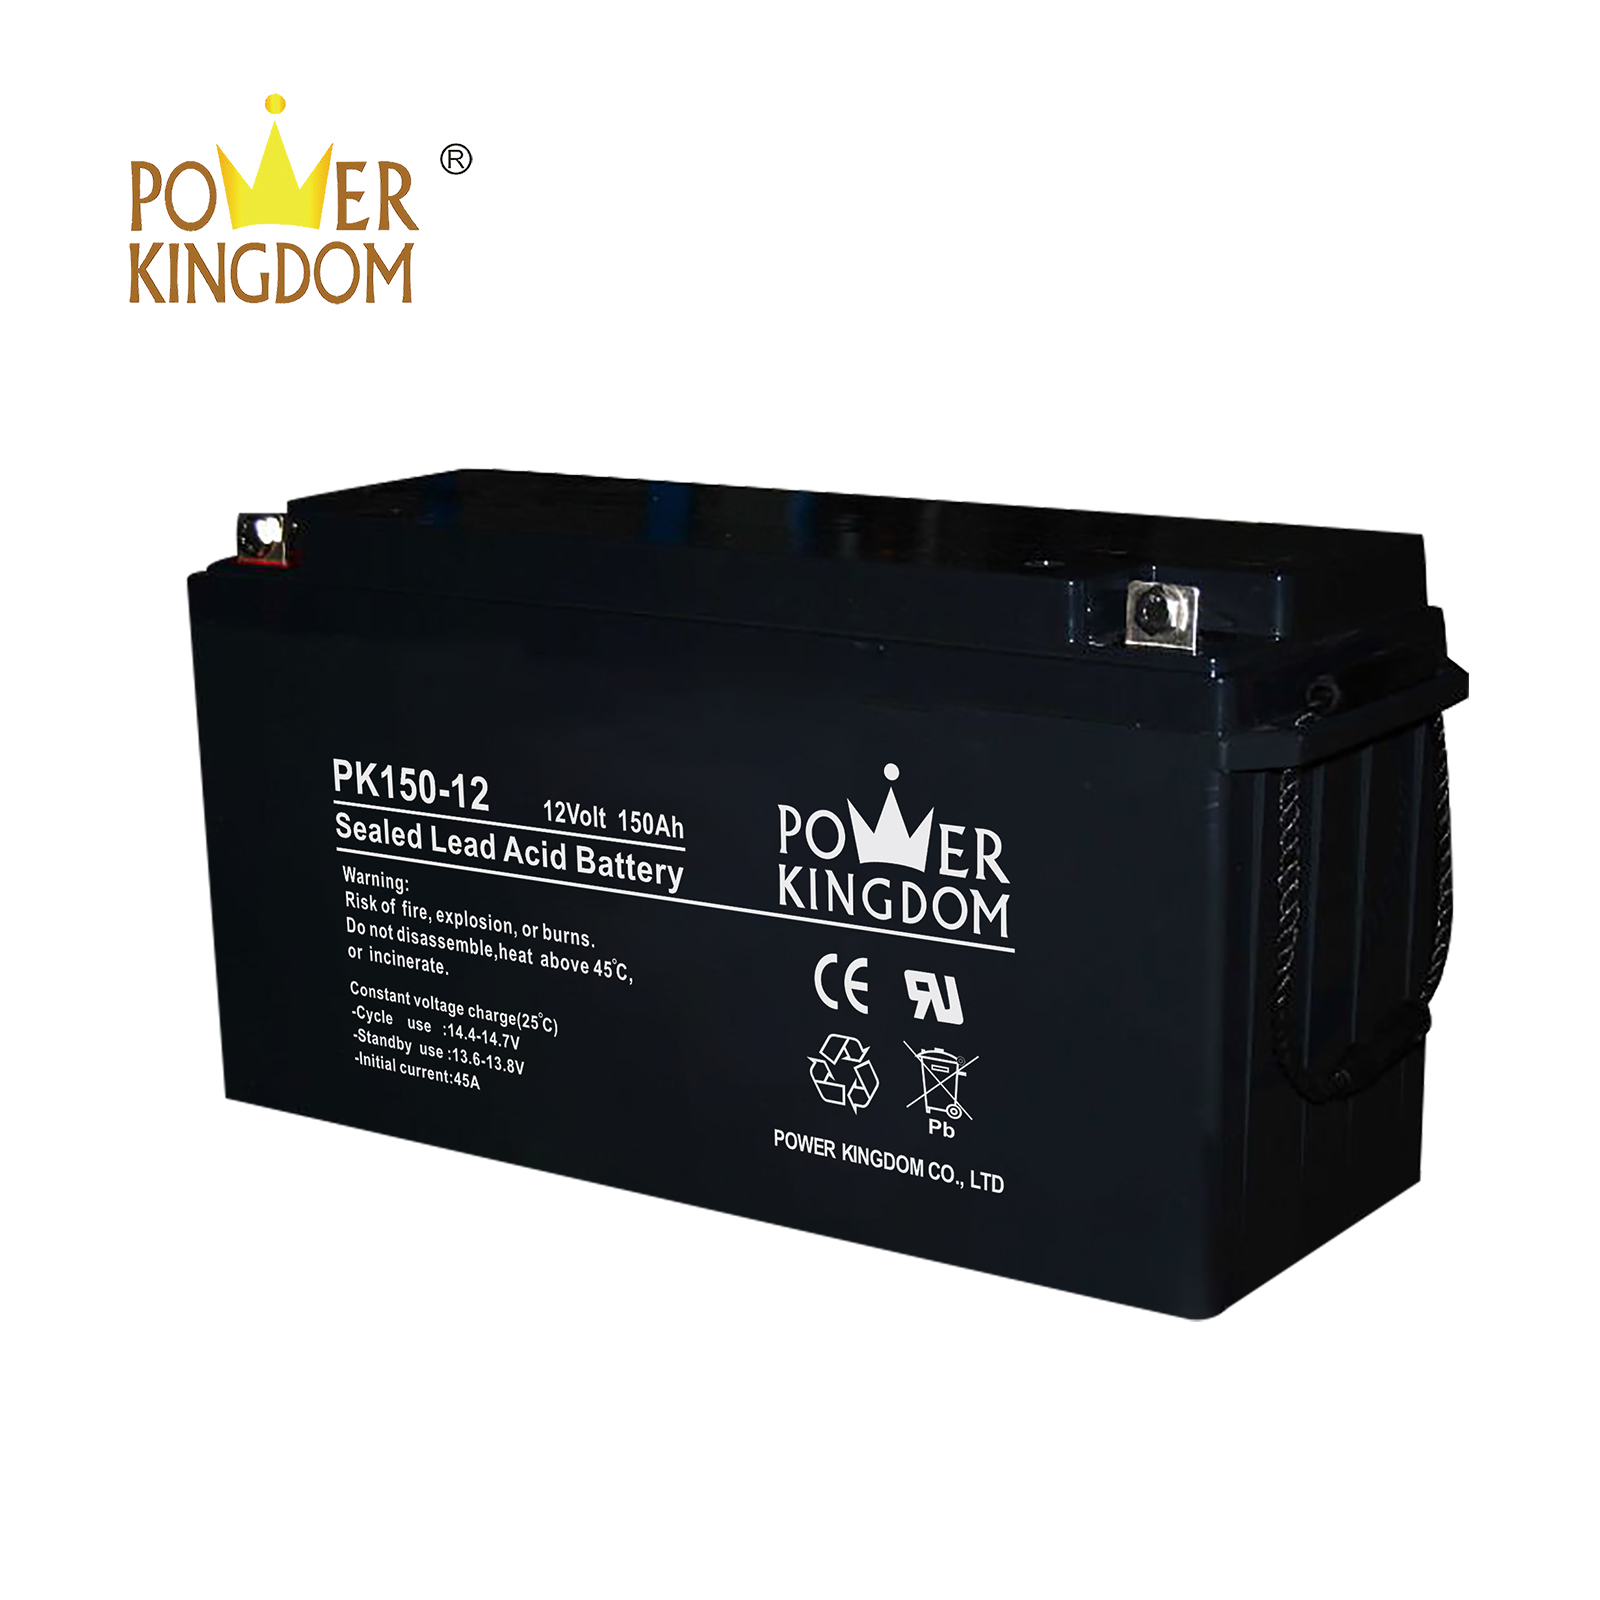 Power Kingdom gel cell deep cycle battery order now solar and wind power system